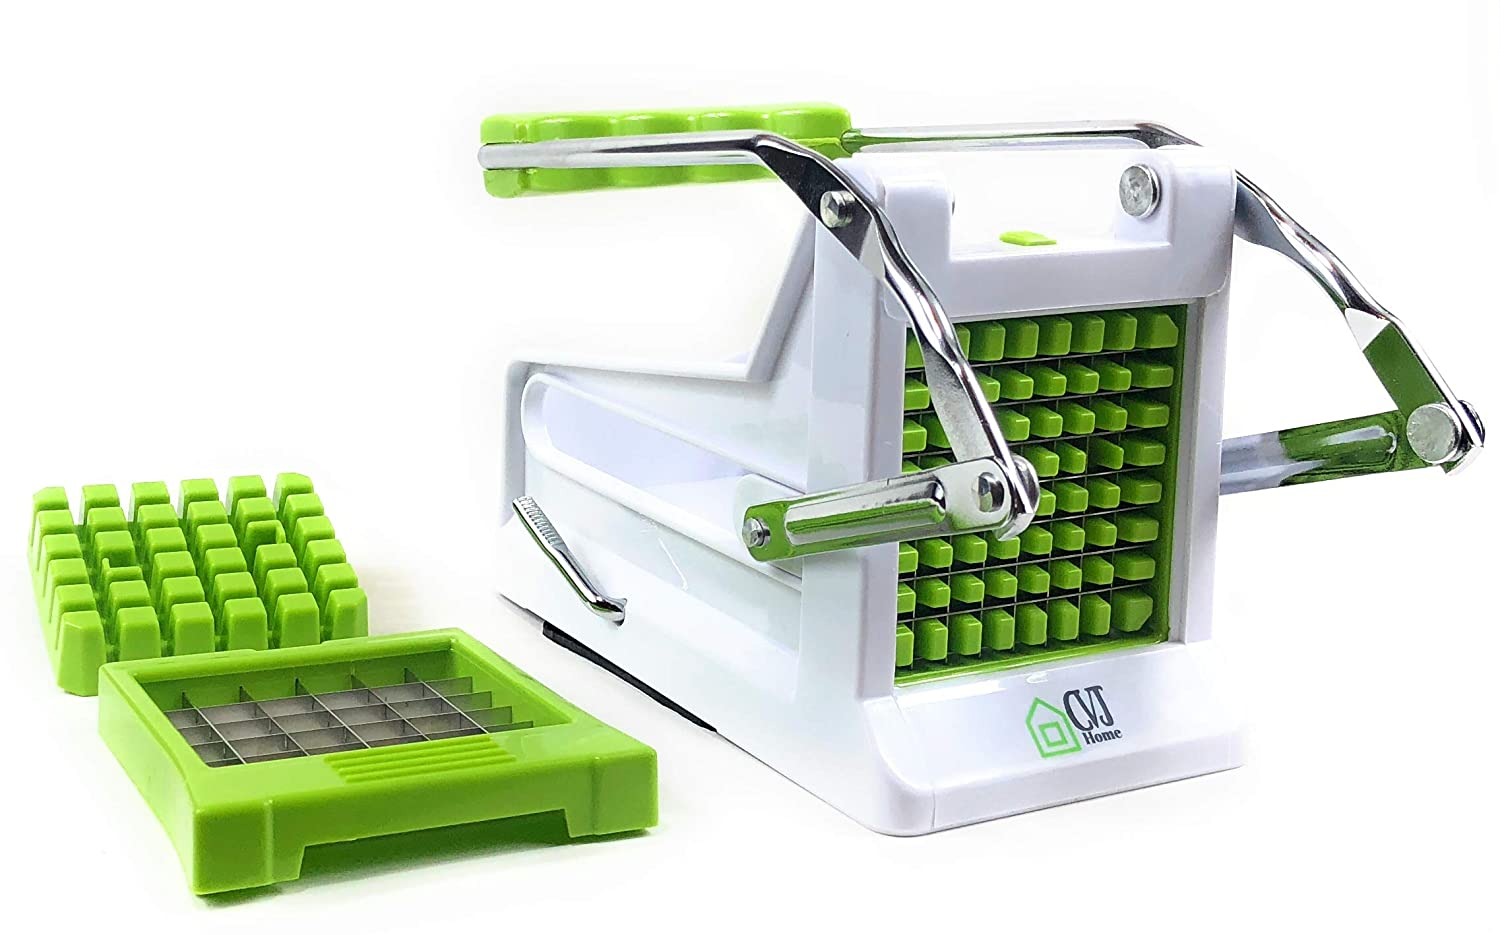 French Fry Potato Cutter The Best 2018 Manual Plastic Professional Potato Slicer With 2 Interchangeable Blades Also Use for Vegetables Like Cucumber, Carrot & More